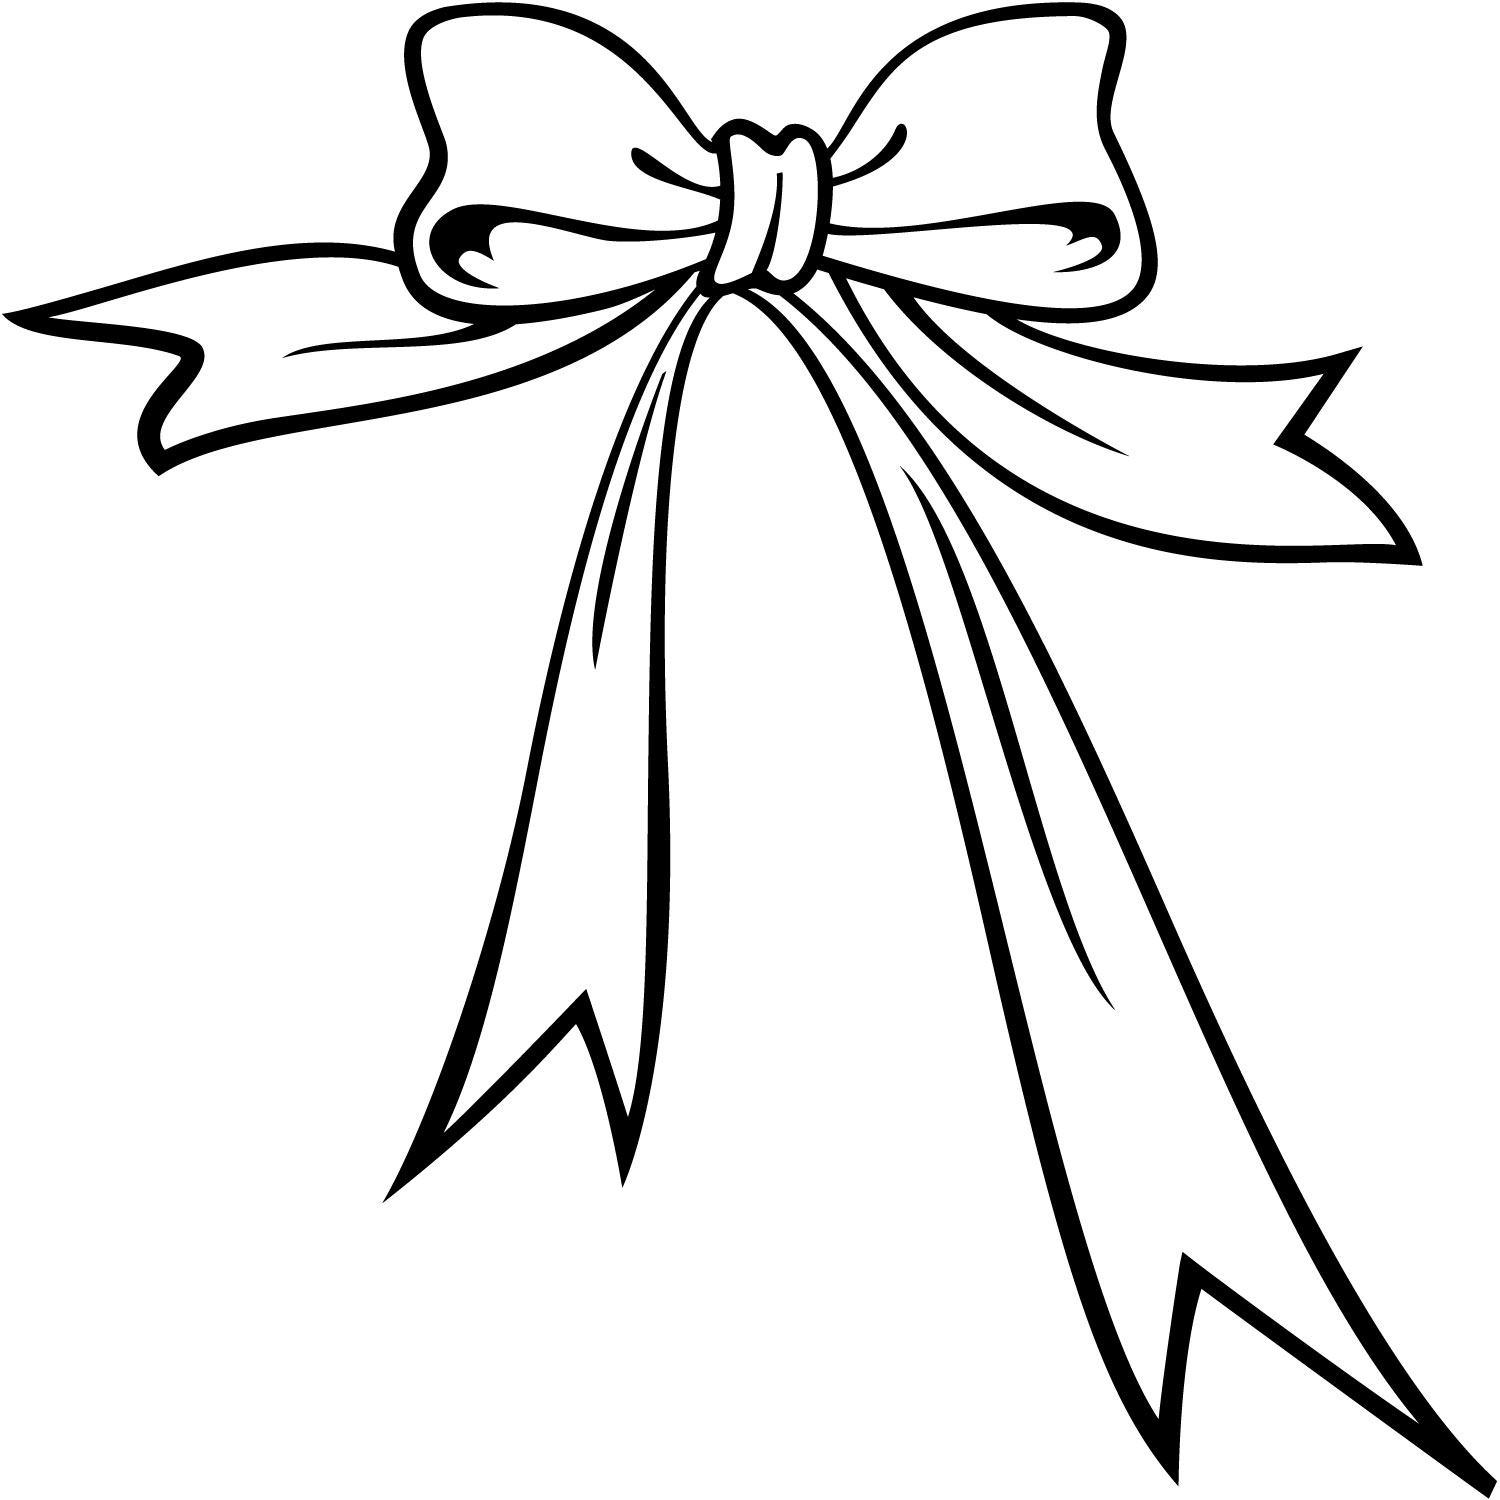 Free Ribbon Banner Clipart Download Free Clip Art Free Clip Art On Clipart Library